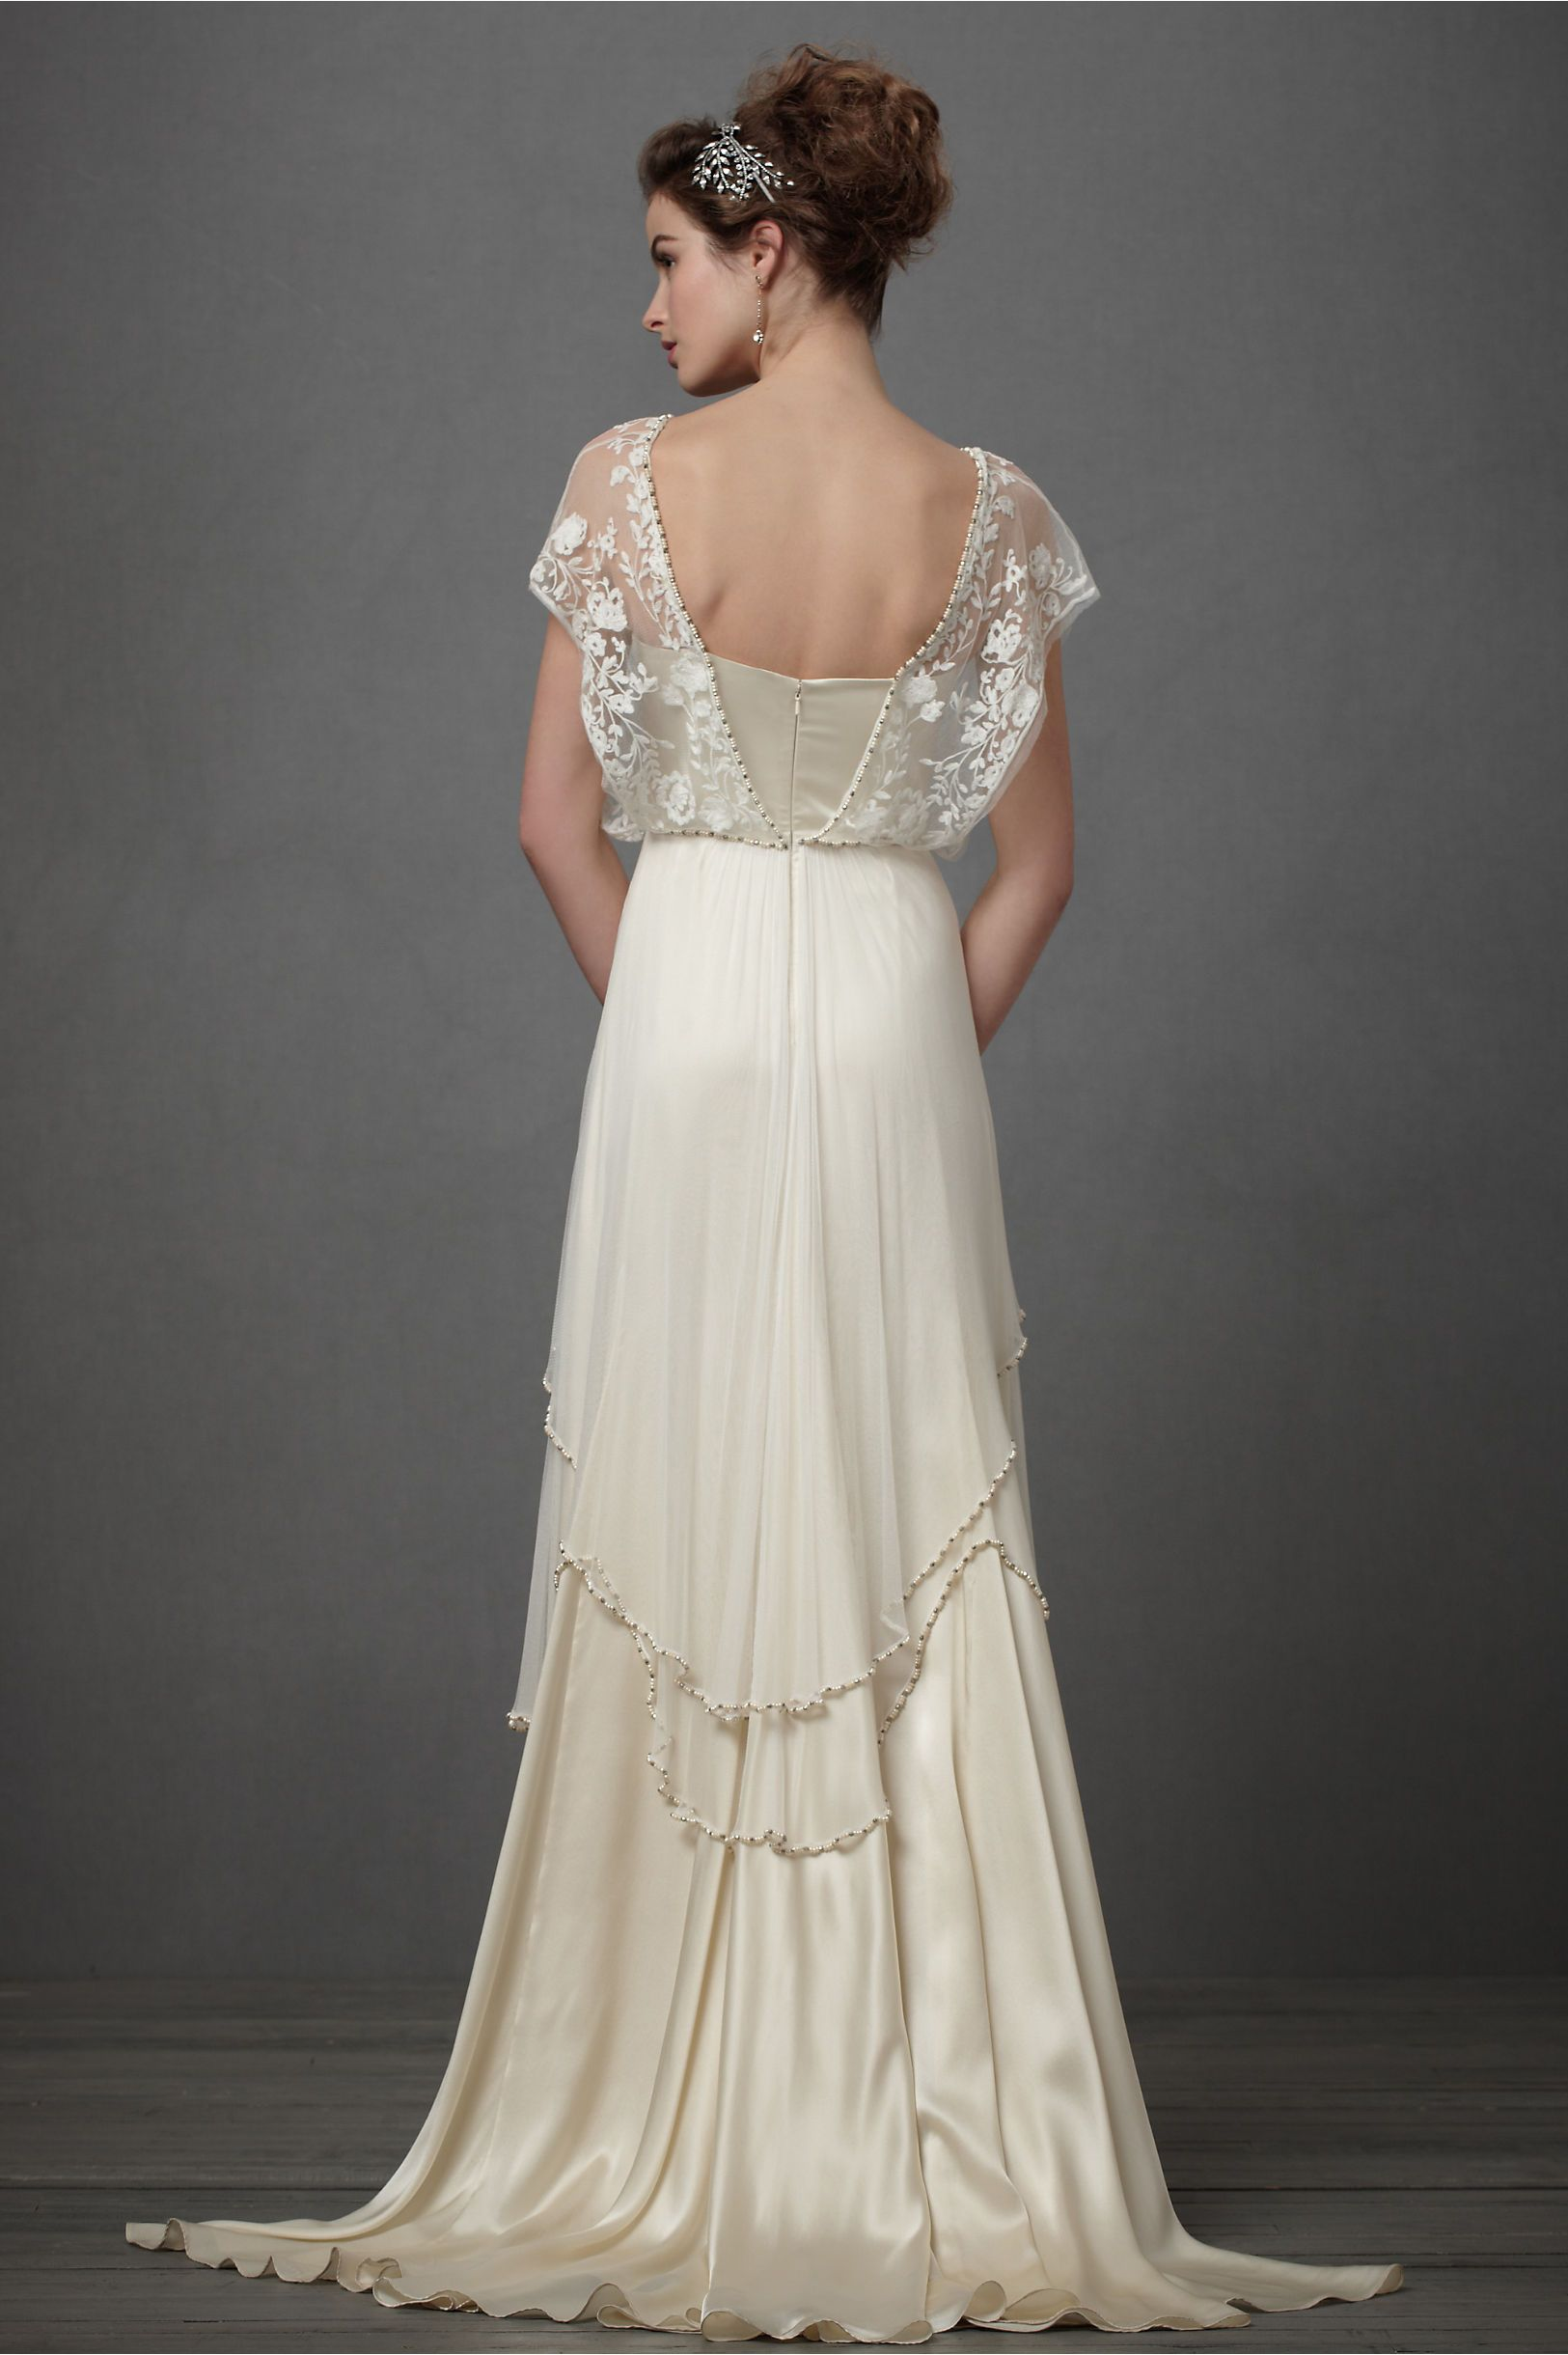 B catherine deane gowns and wedding dress